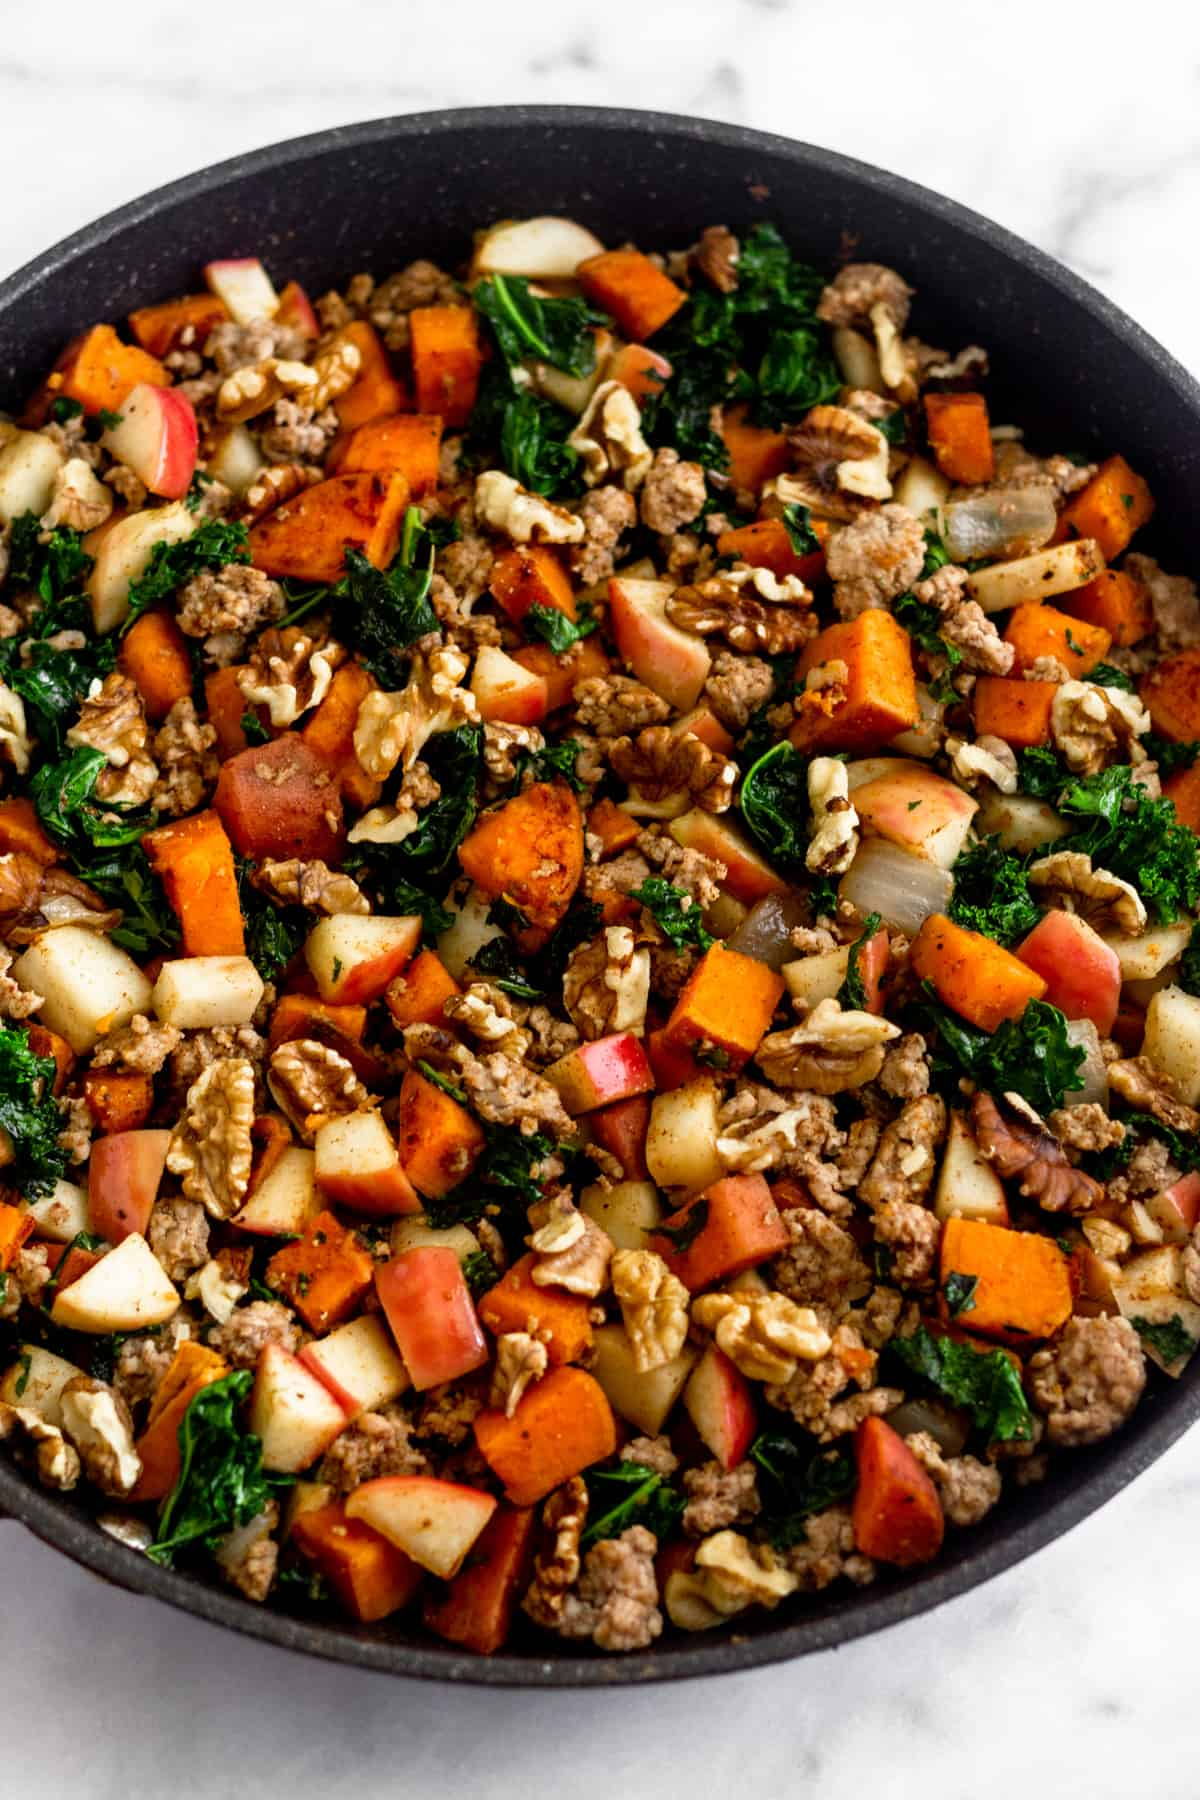 Large saute skillet filled with sweet potatoes, sausage, apples, kale, onions, and walnuts.